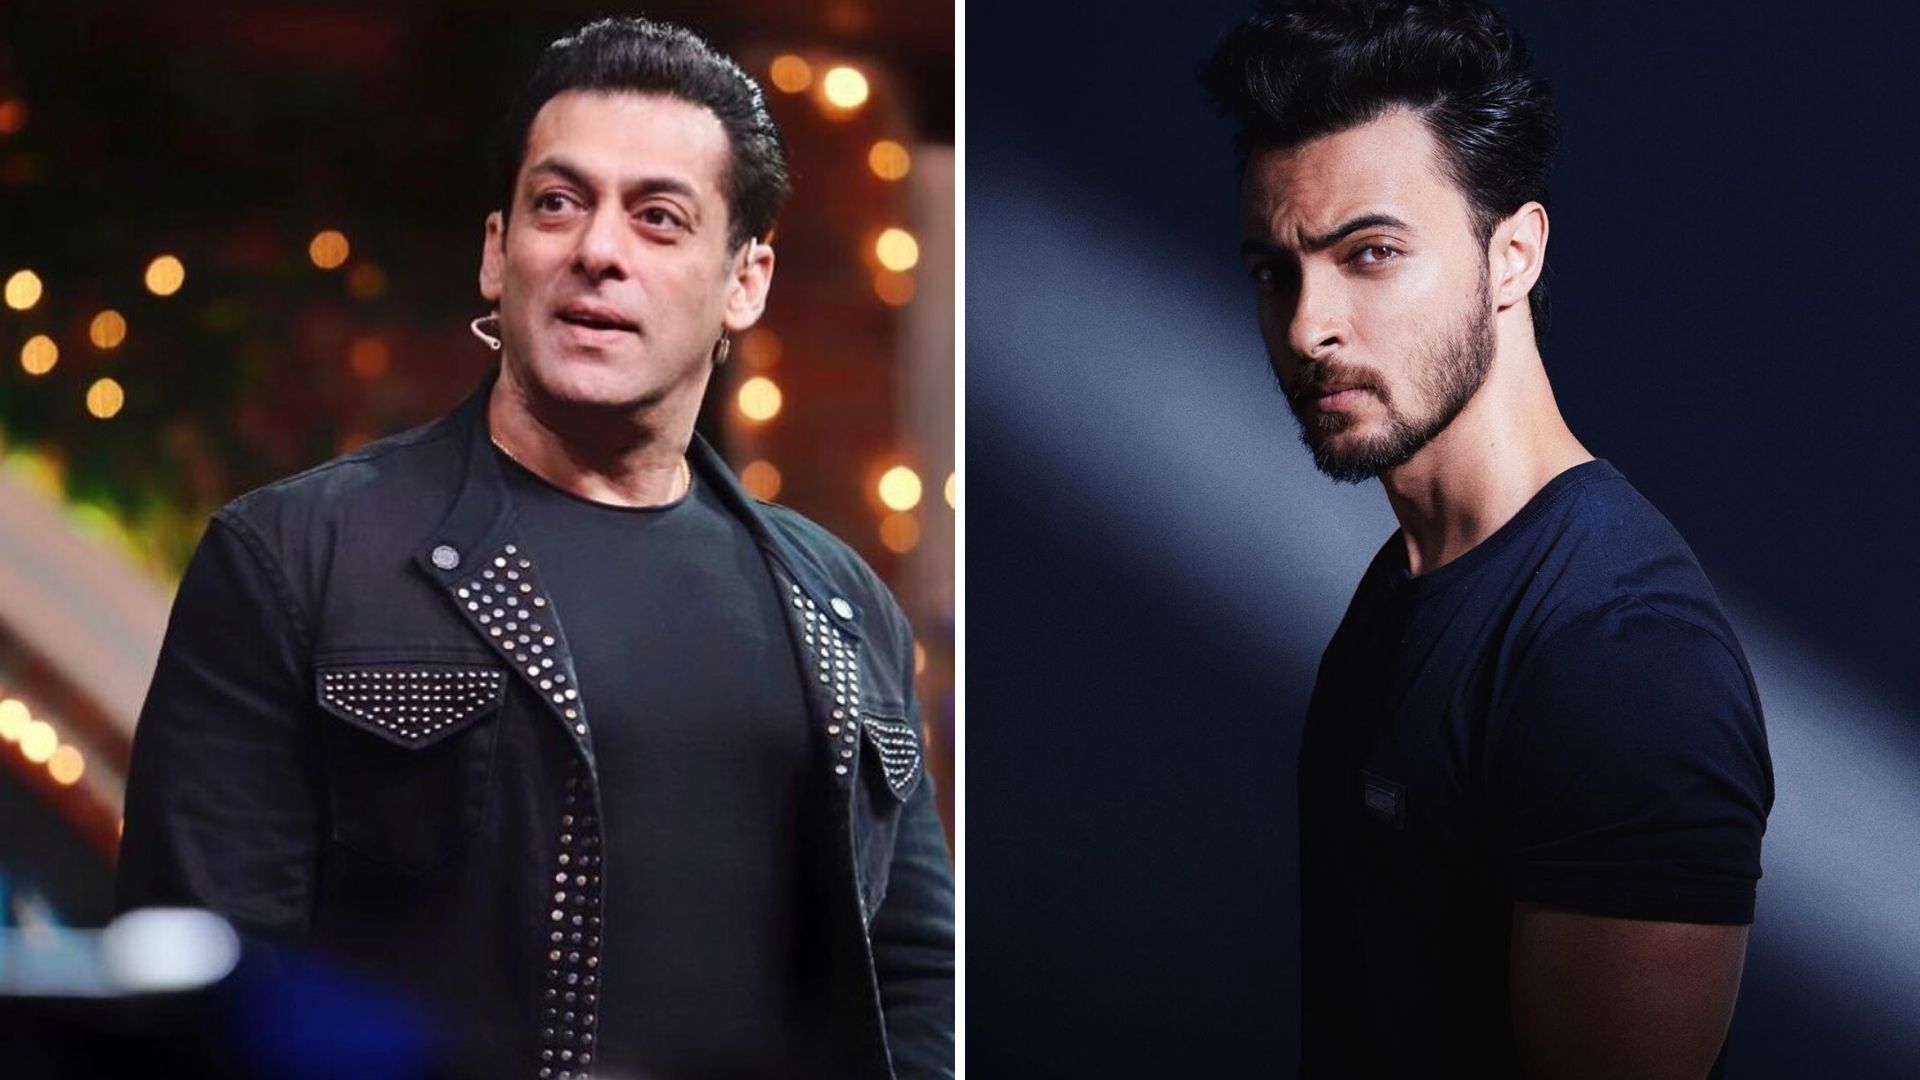 Salman to Play Sikh Cop in Next Film With Brother-in-Law Aayush?